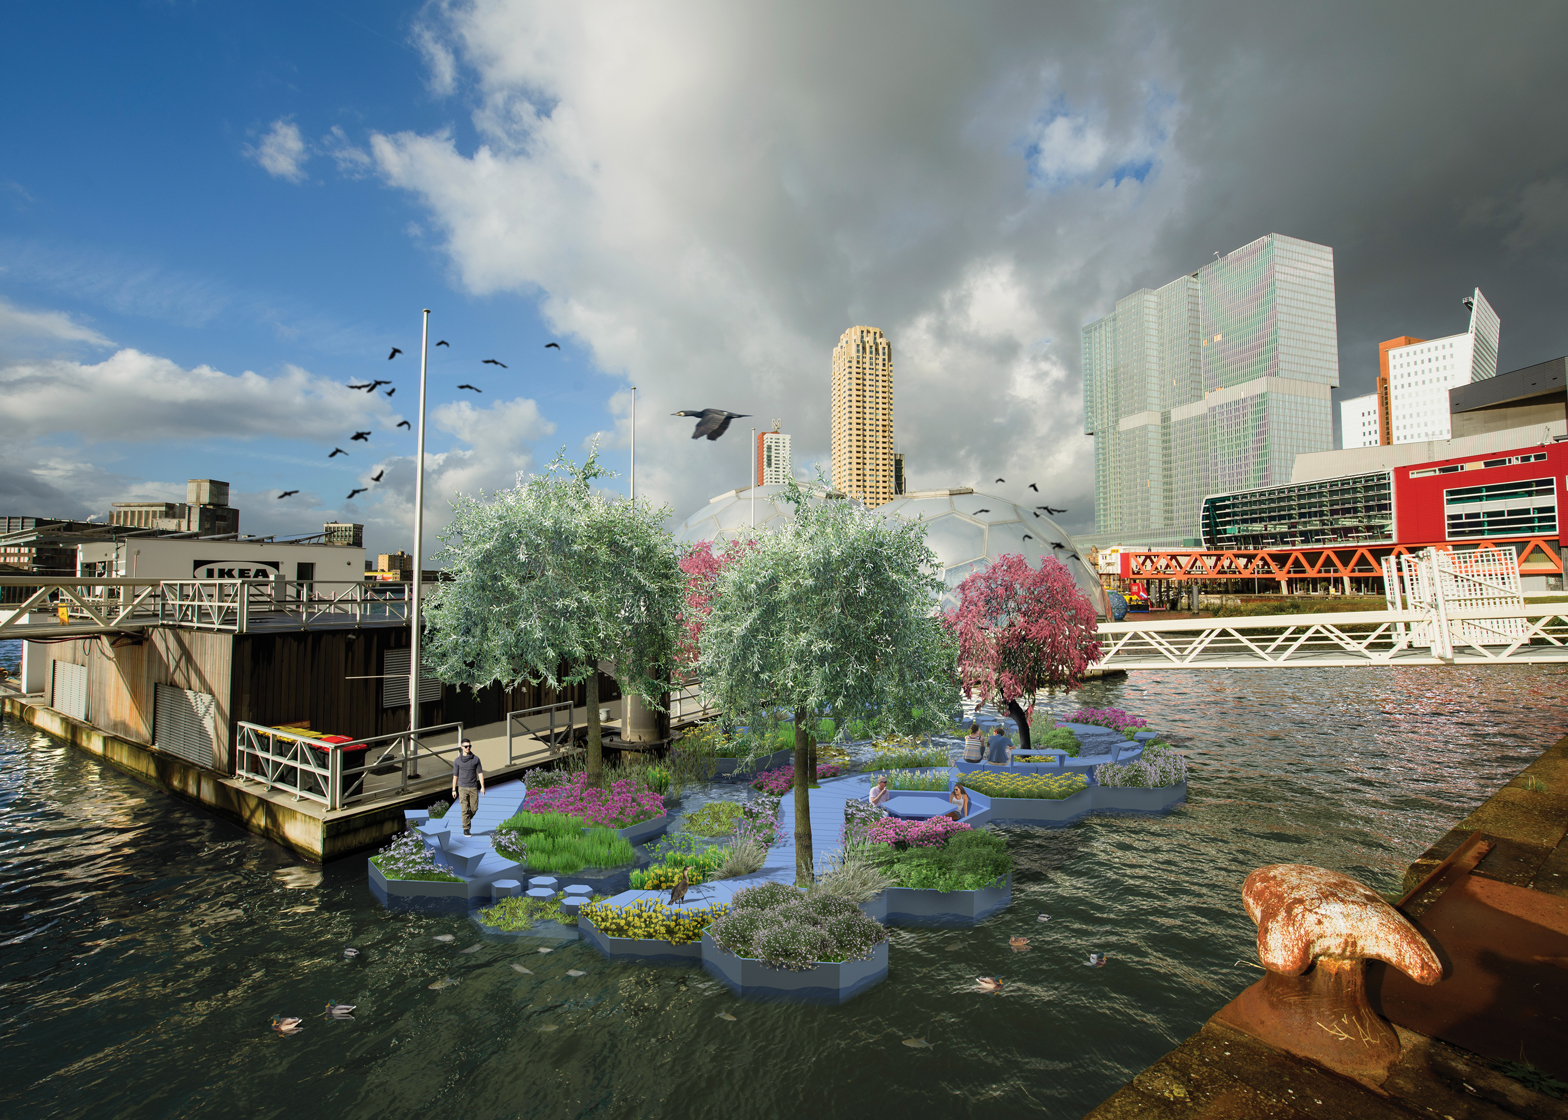 Architect Ramon Knoester is leading a project to build a floating park out of recycled sea plastic